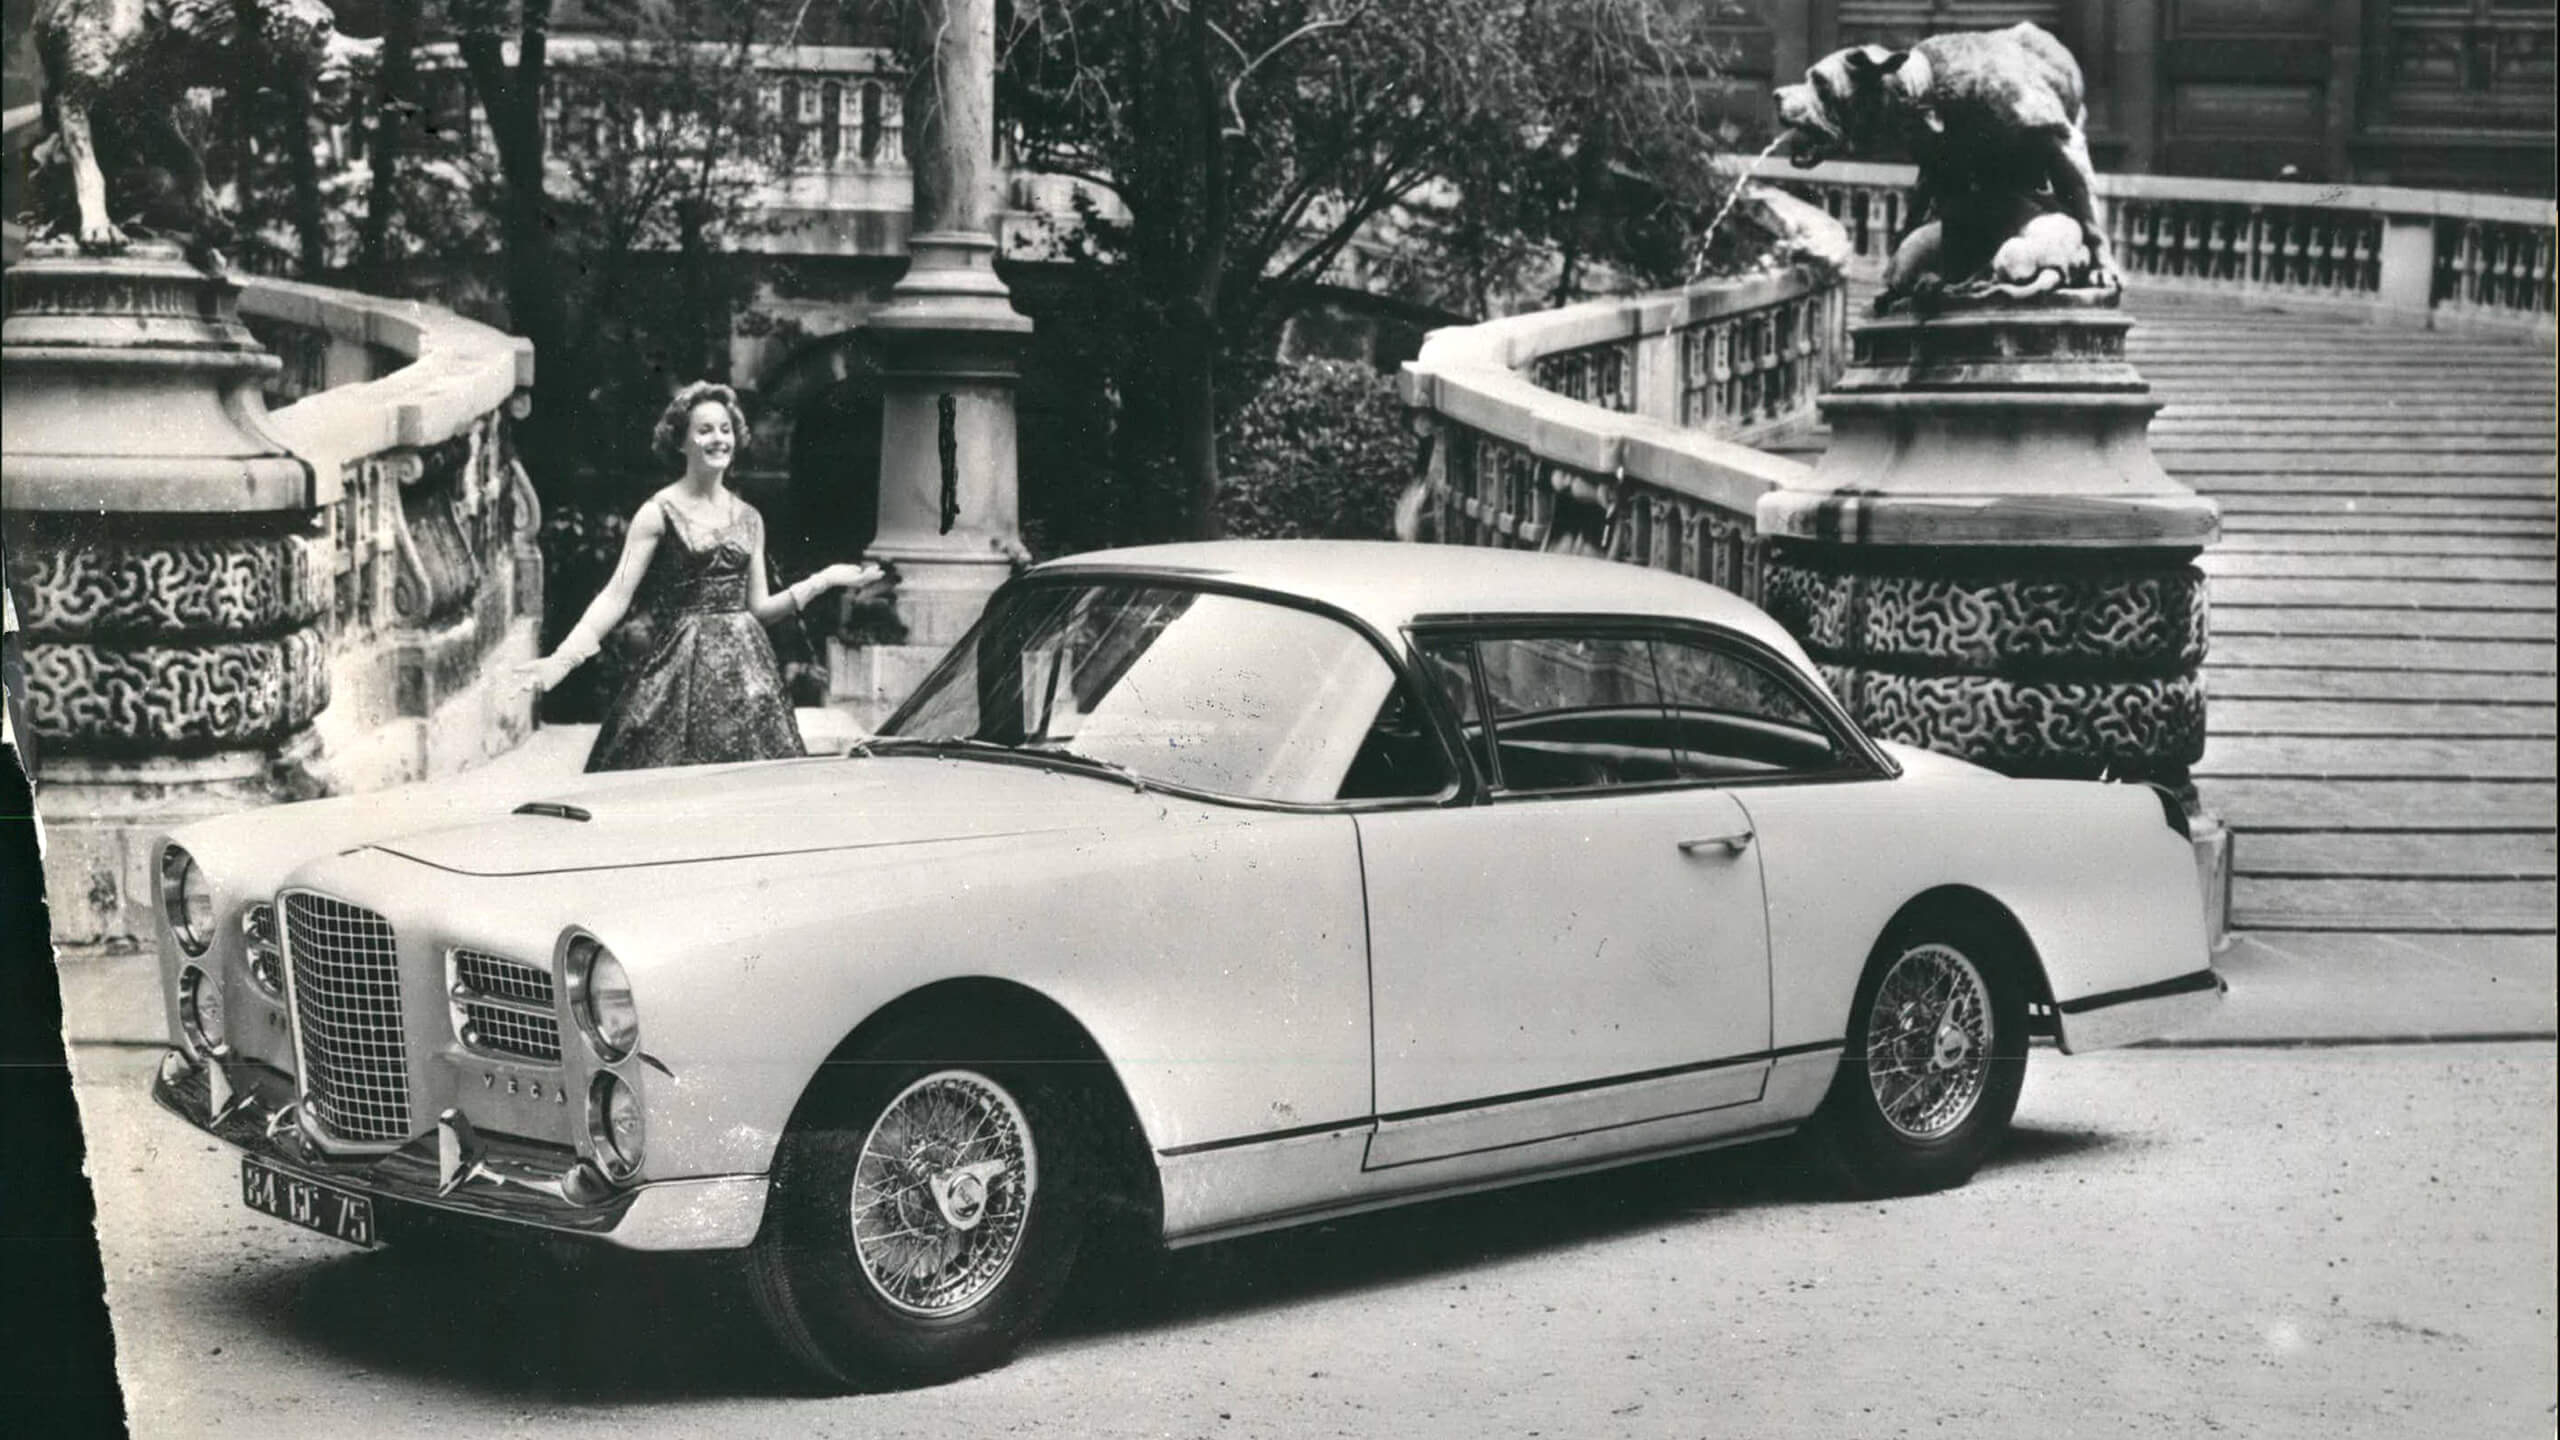 Style guru Stephen Bayley talks about the Facel Vega HK500